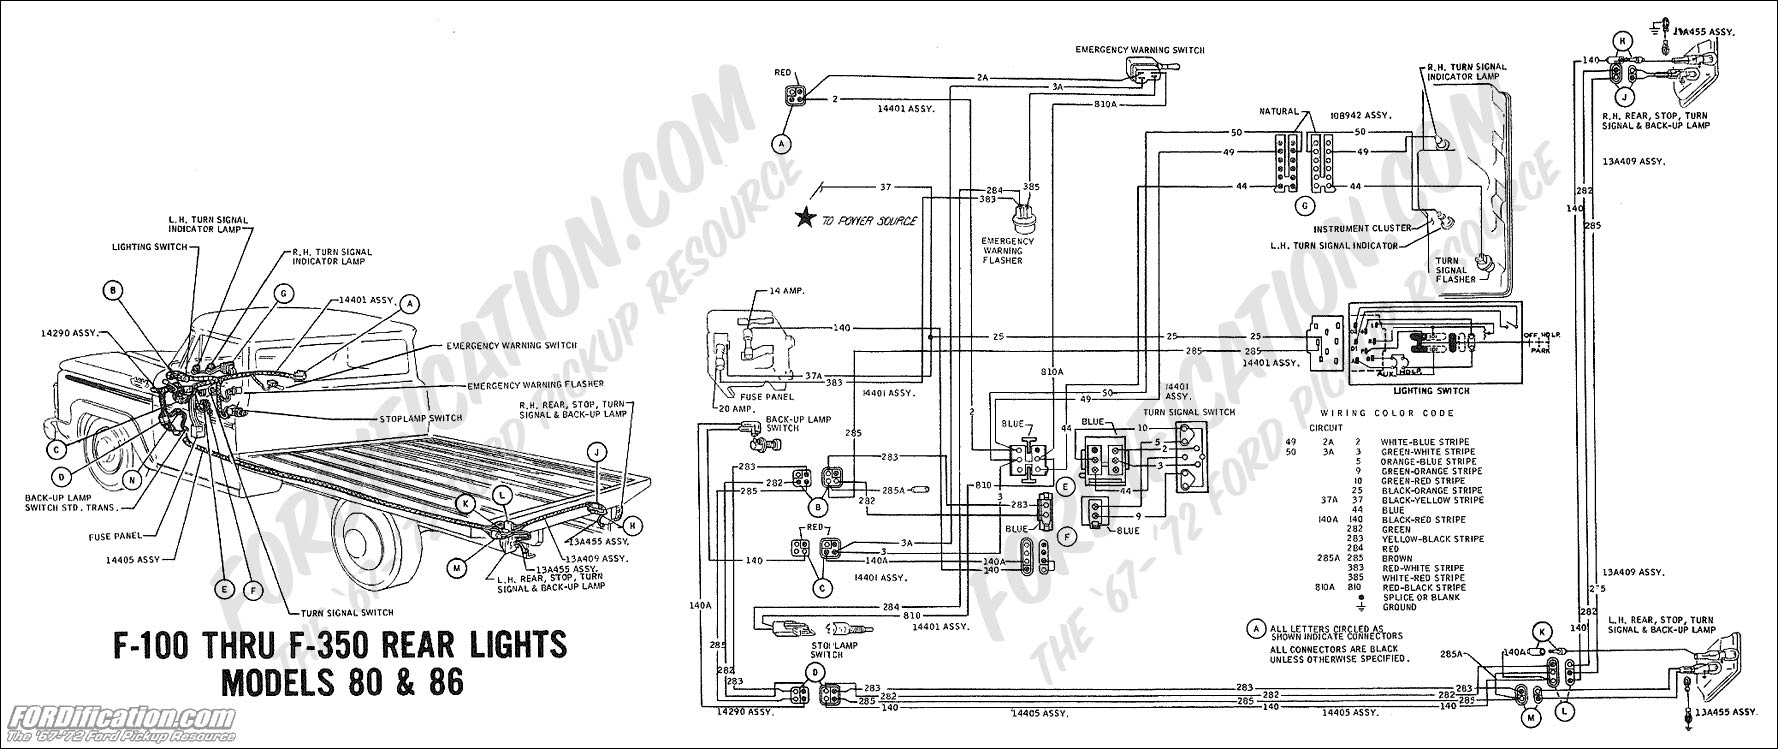 1971 Ford F100 Tail Light Wiring Diagram. Ford. Wiring